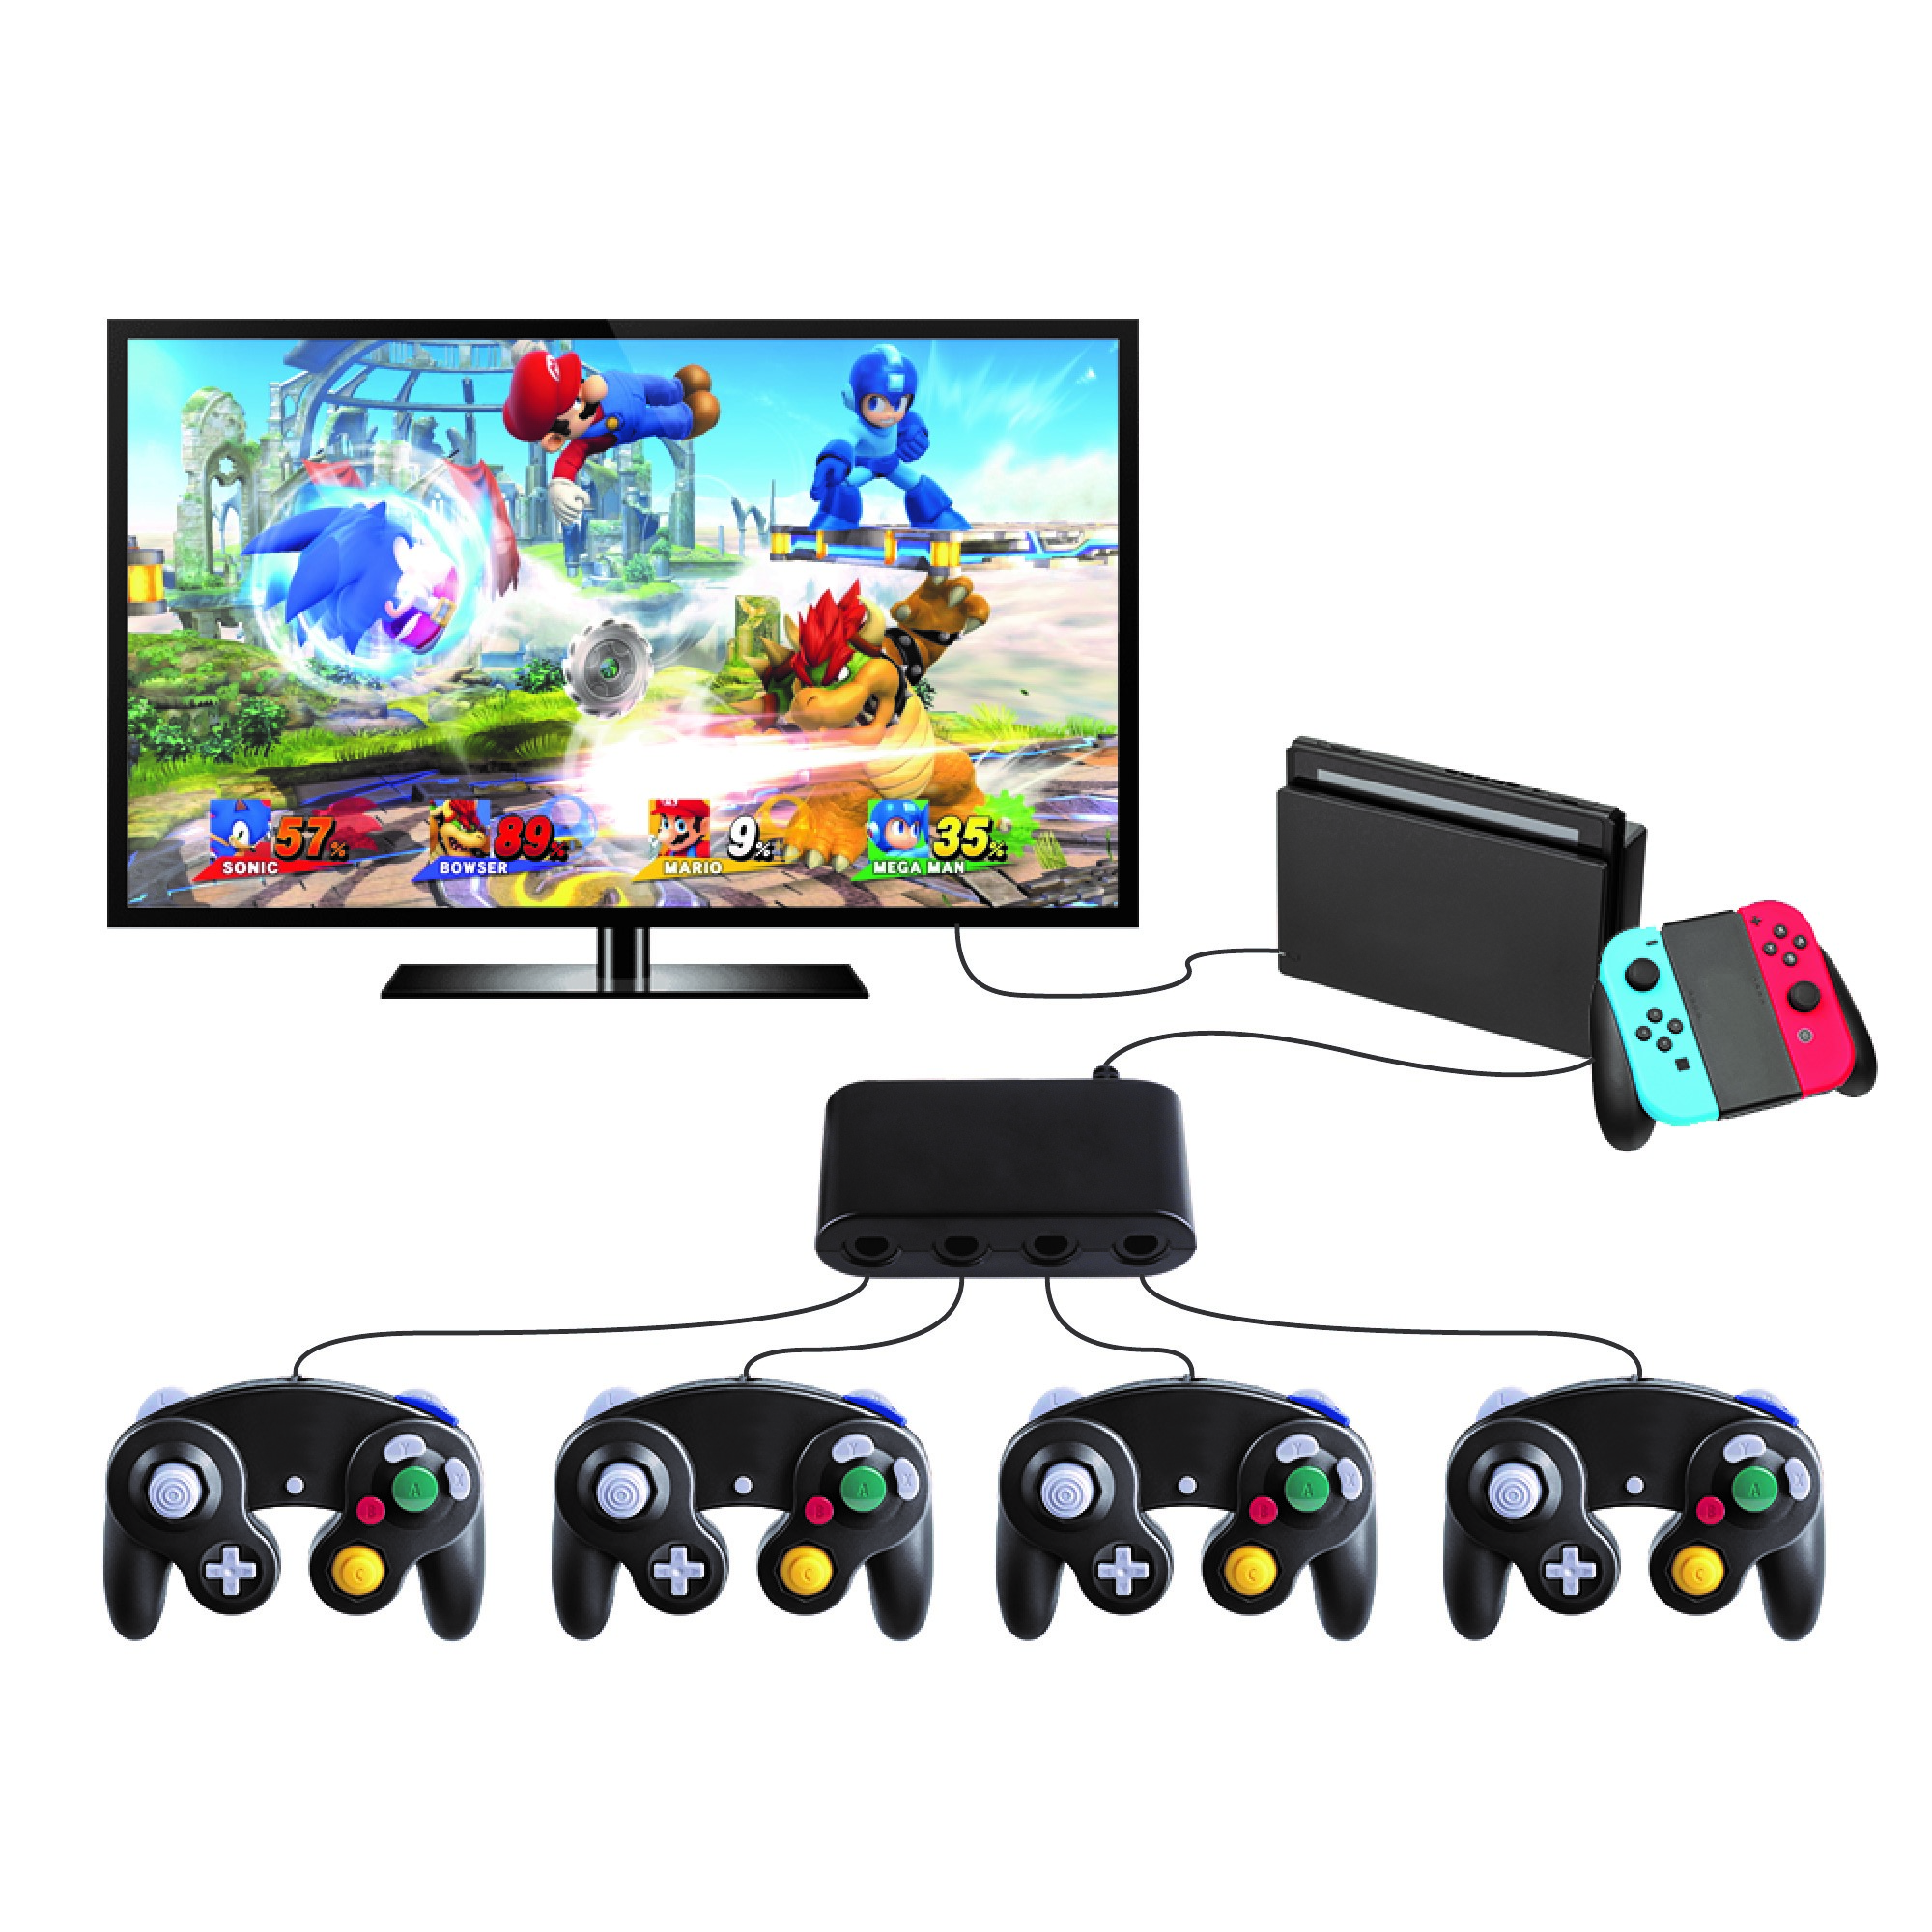 Ematic Nintendo Switch, Game Cube Controller Adapter, Black, EGCN152